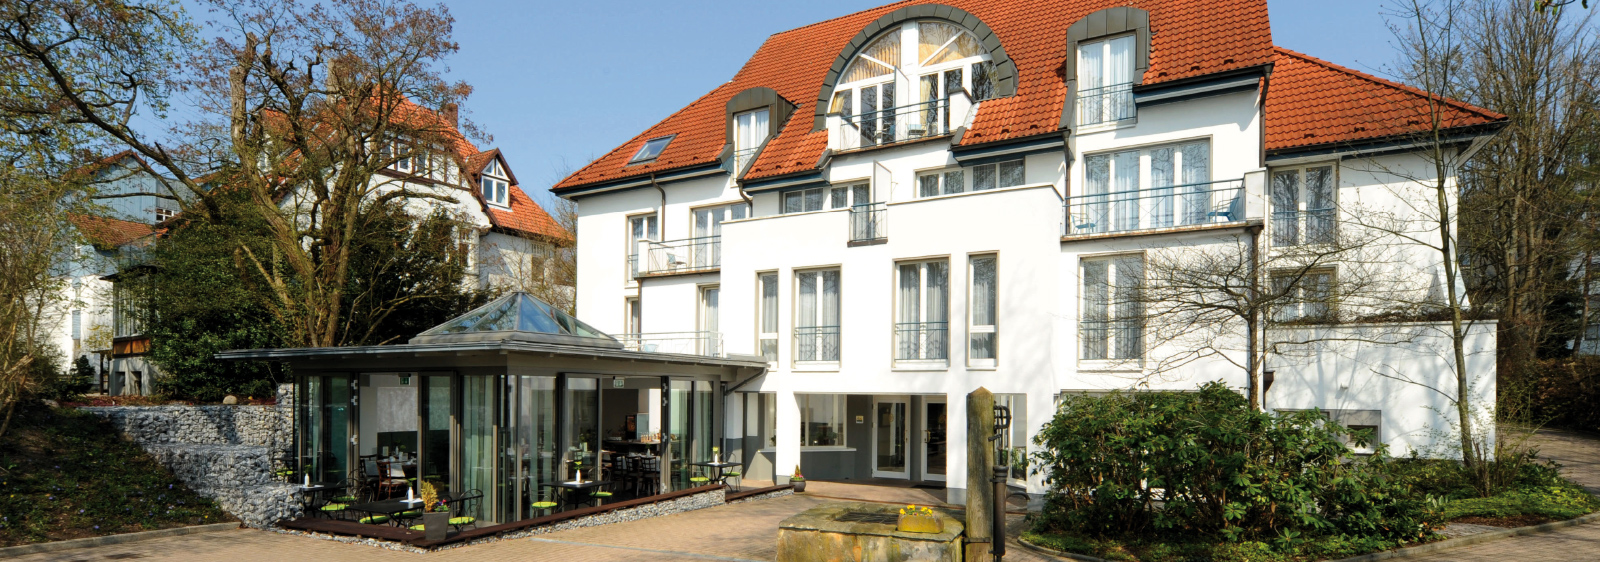 Photo of Hotel Caroline Mathilde (Celle, Germany)